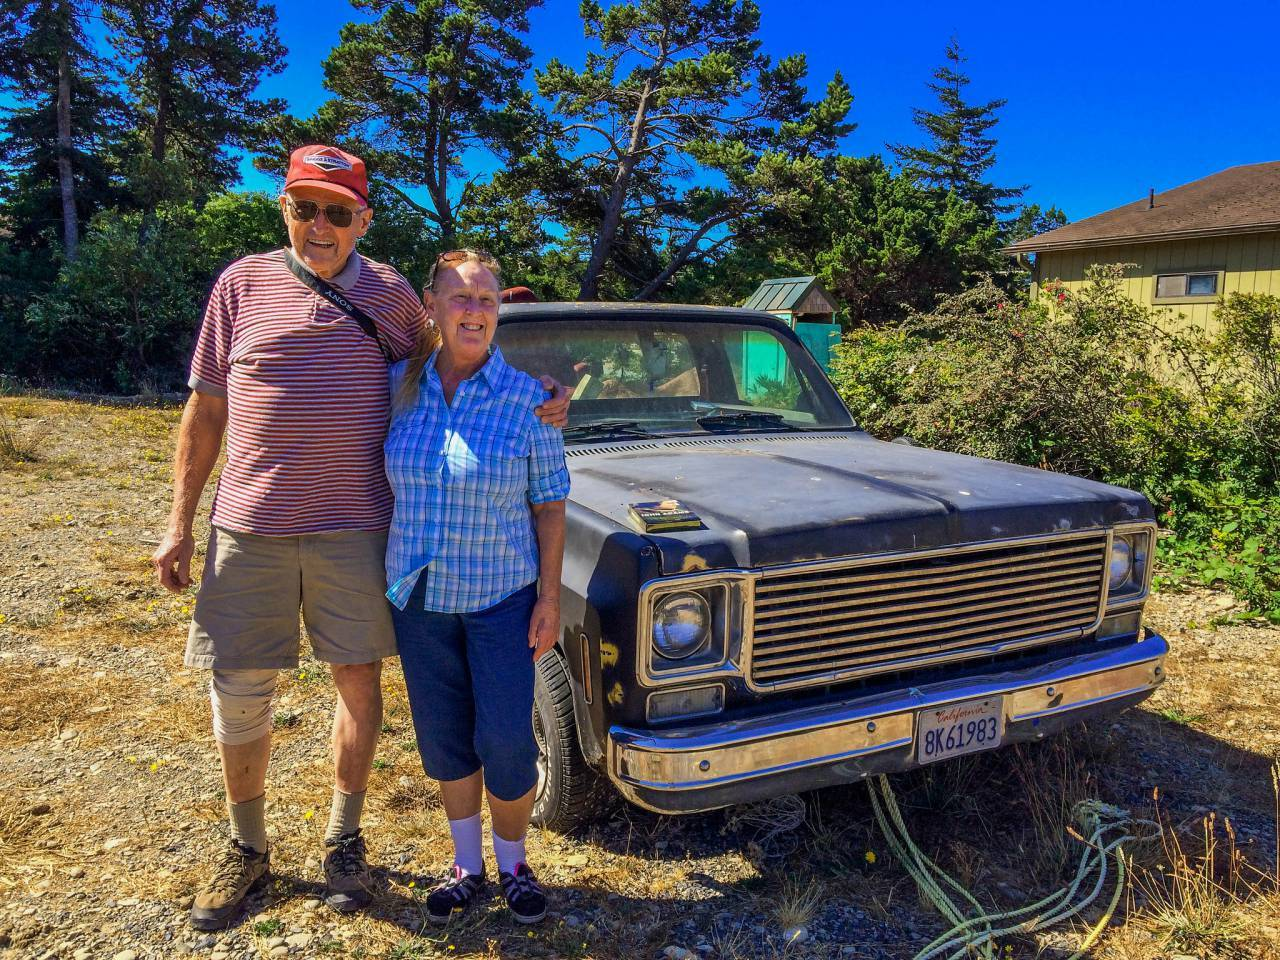 Aug 2015--Behind TJs Cafe--Port Orford, OR Old friends from my hometown, Fresno, CA, stopped by and took this snapshot of the missus and I in a vacant lot behind the restaurant where we had breakfast. The broken down California truck made a great prop for the picture.